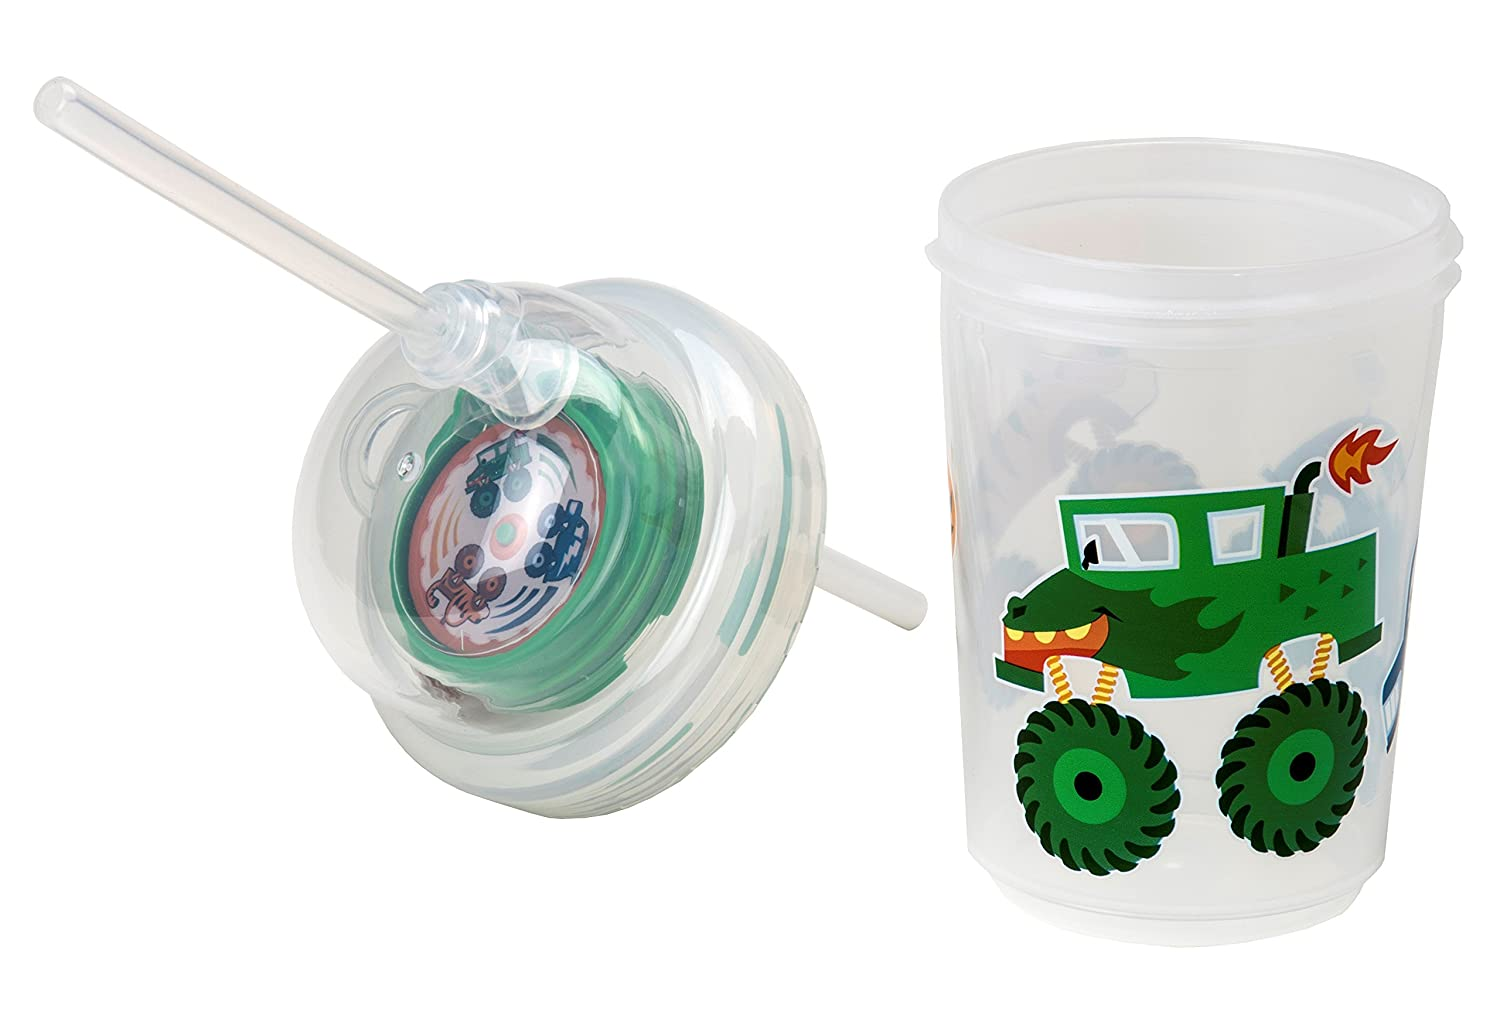 nuspin kids 240 ml Sip /& Spin Tasse Avec Paille Camions Monstres Tournent Quand On Boit